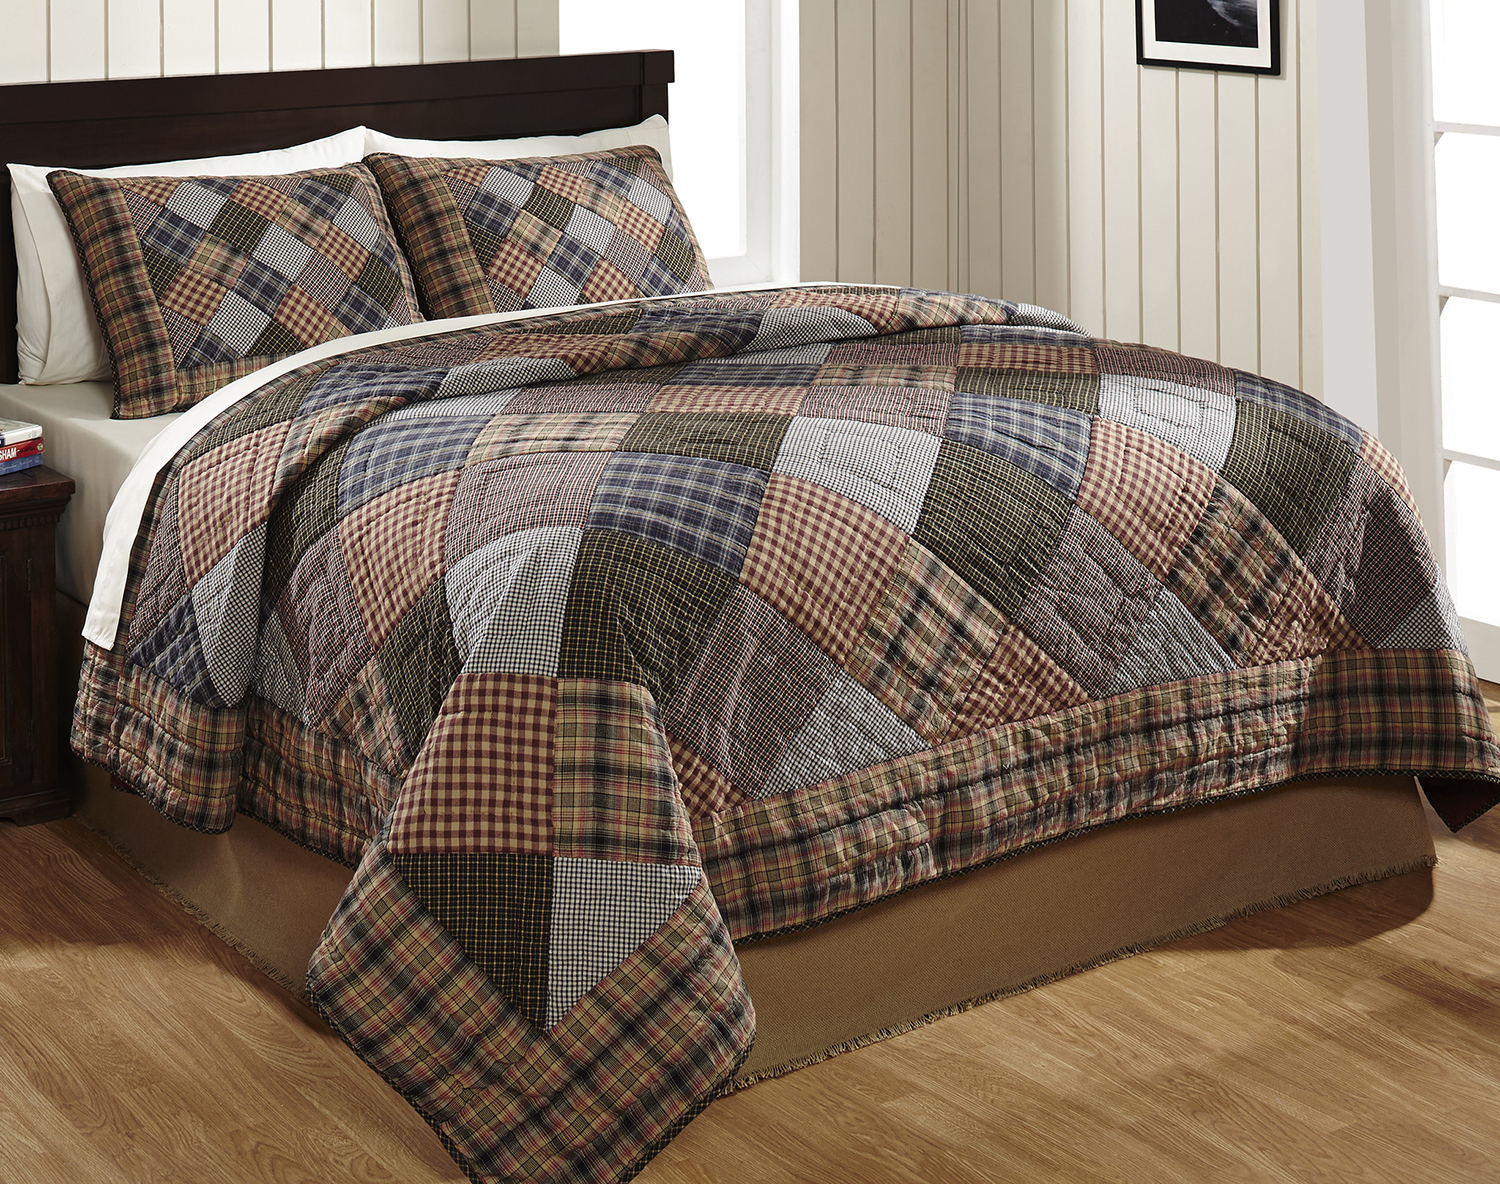 Peyton By Olivias Heartland Quilts Beddingsuperstore Com